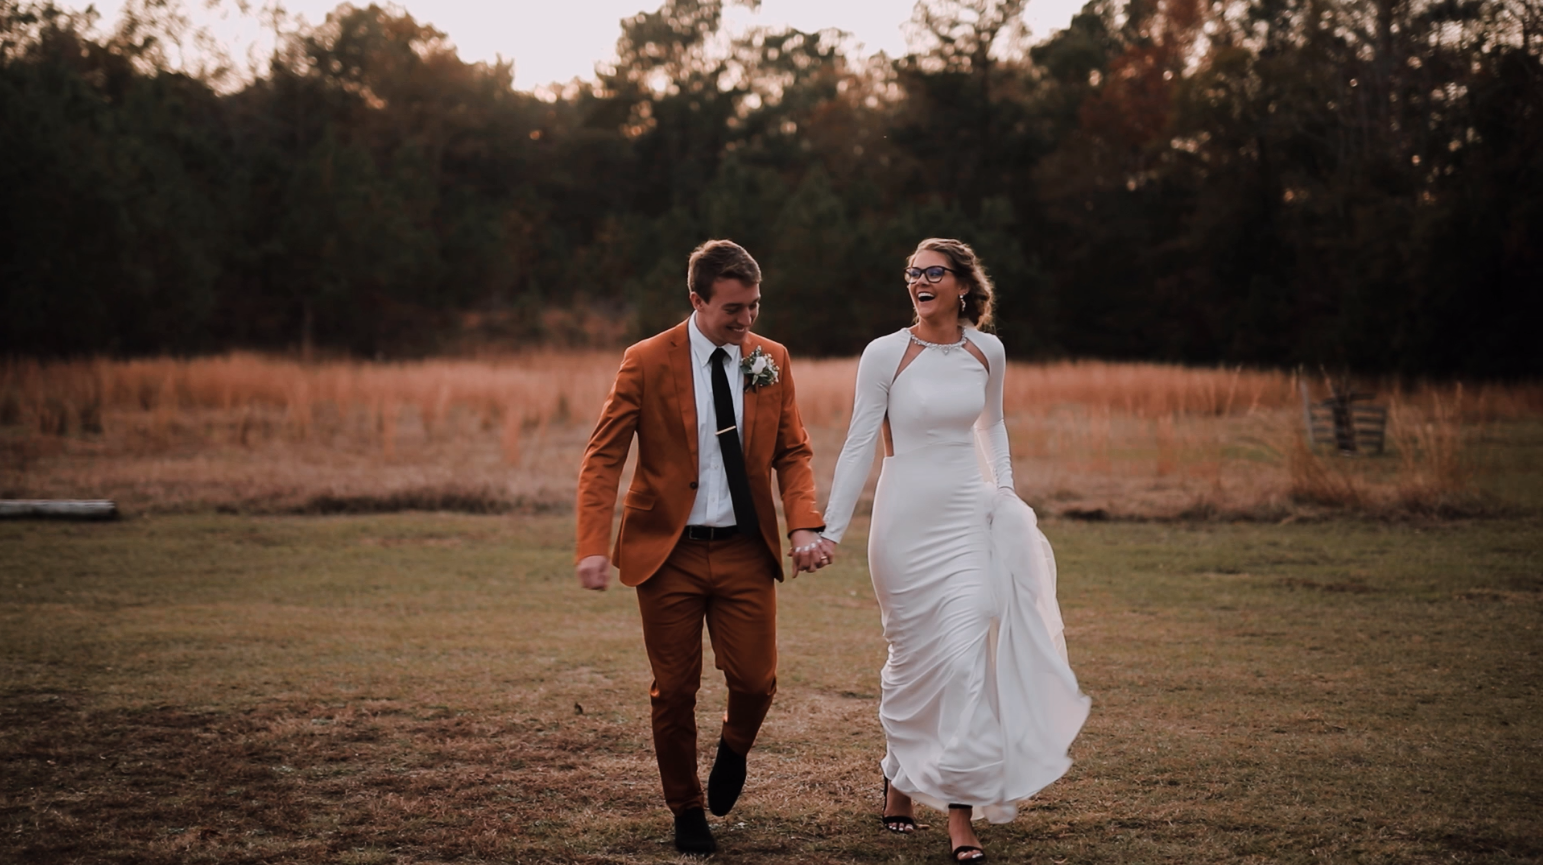 Hannah + Ryan | Timmonsville, South Carolina | The Cabin at Old Spur